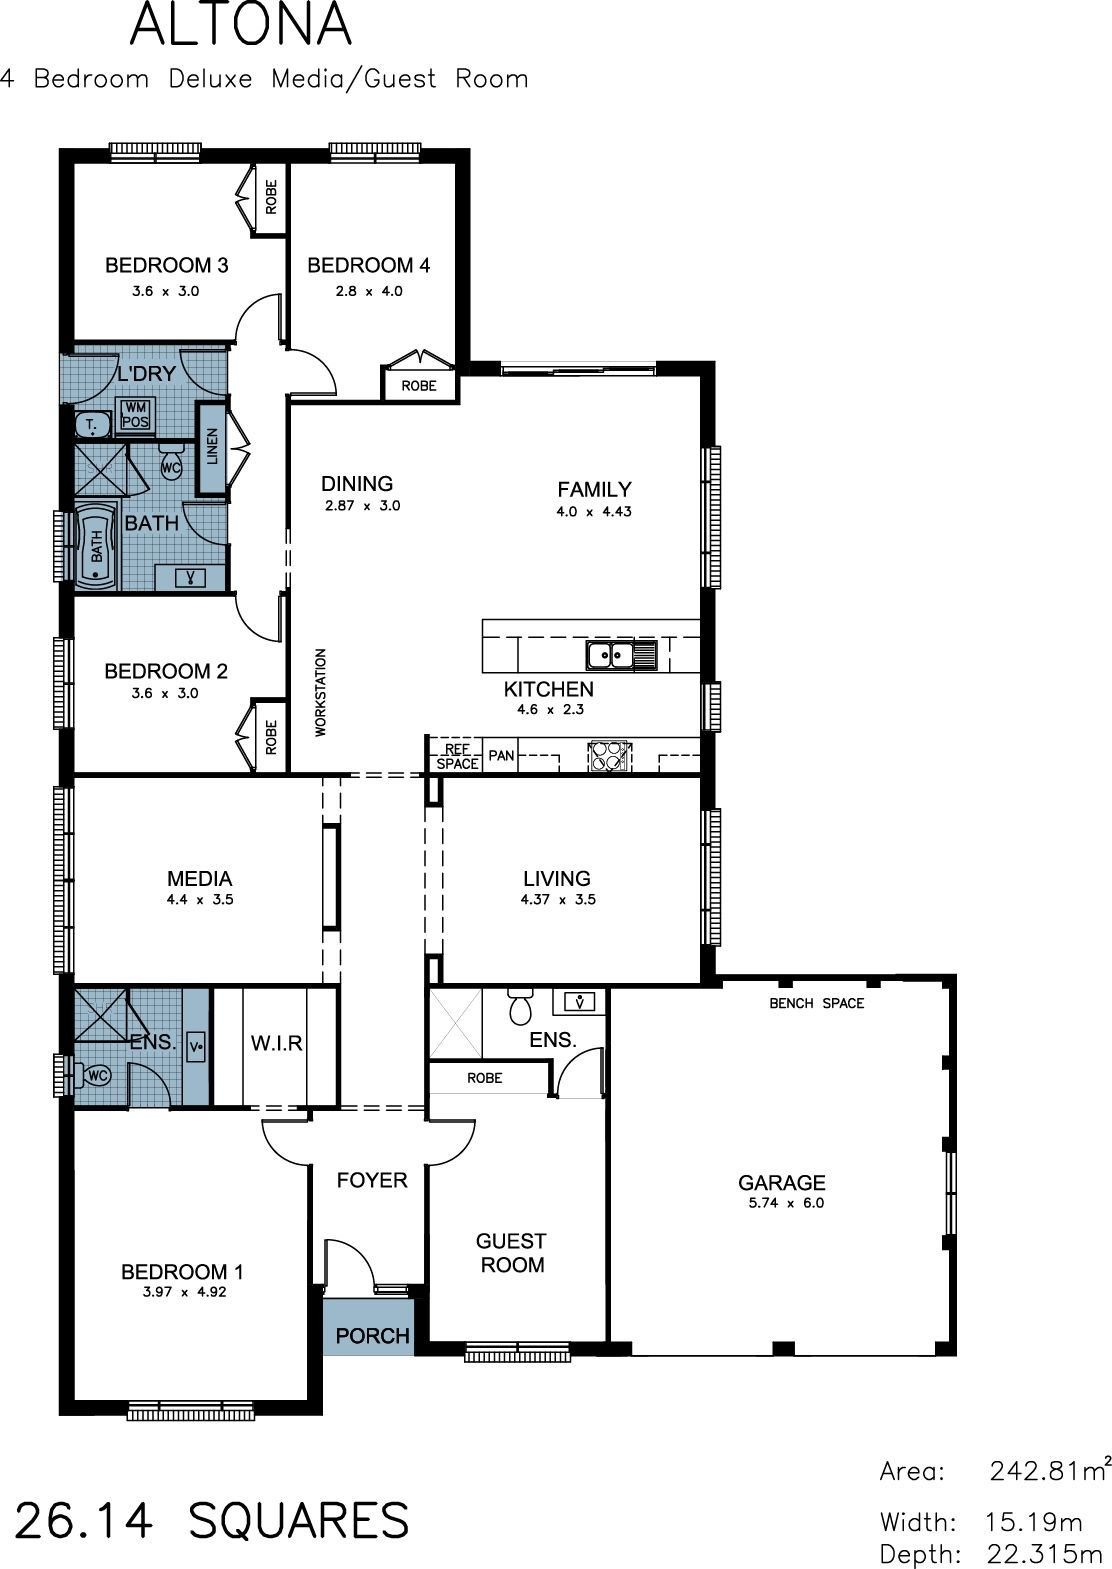 Best Altona Allworth Homes An Evolutionary Design In With Pictures